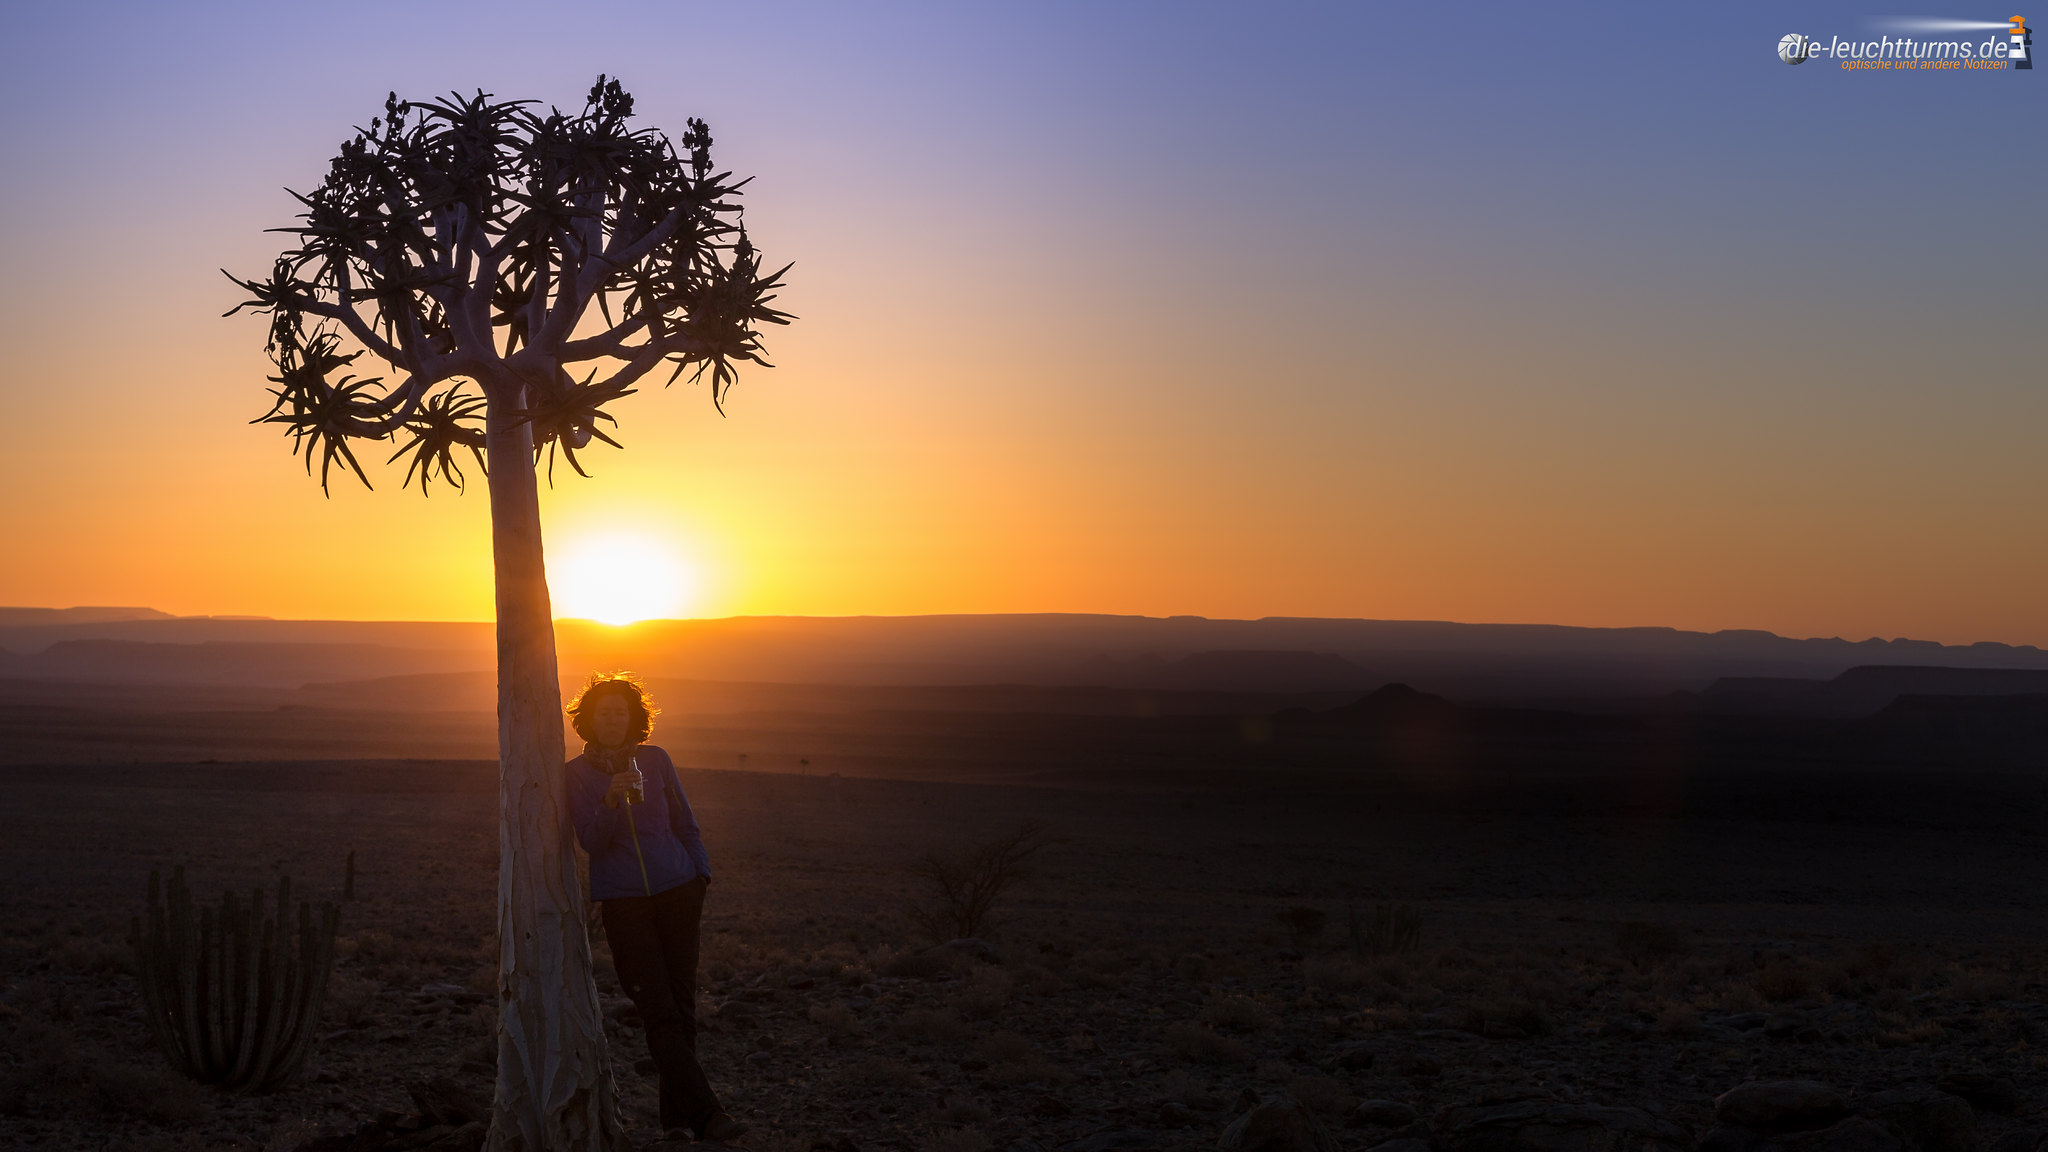 Sundowner under a quiver tree